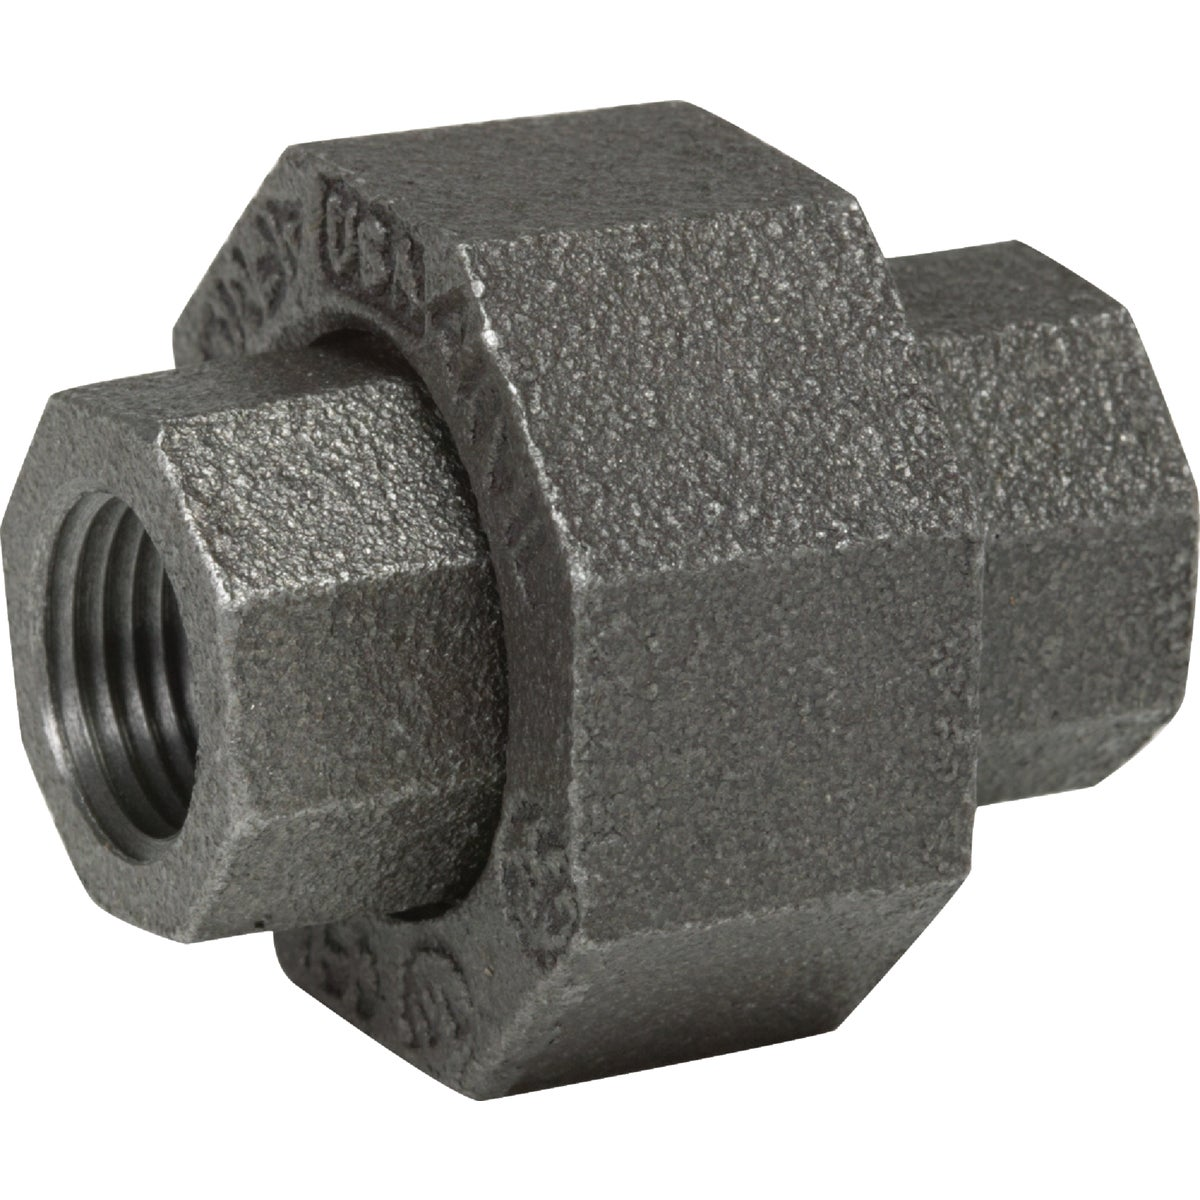 "1-1/2"" BLACK UNION - 8700163150 by Anvil International"